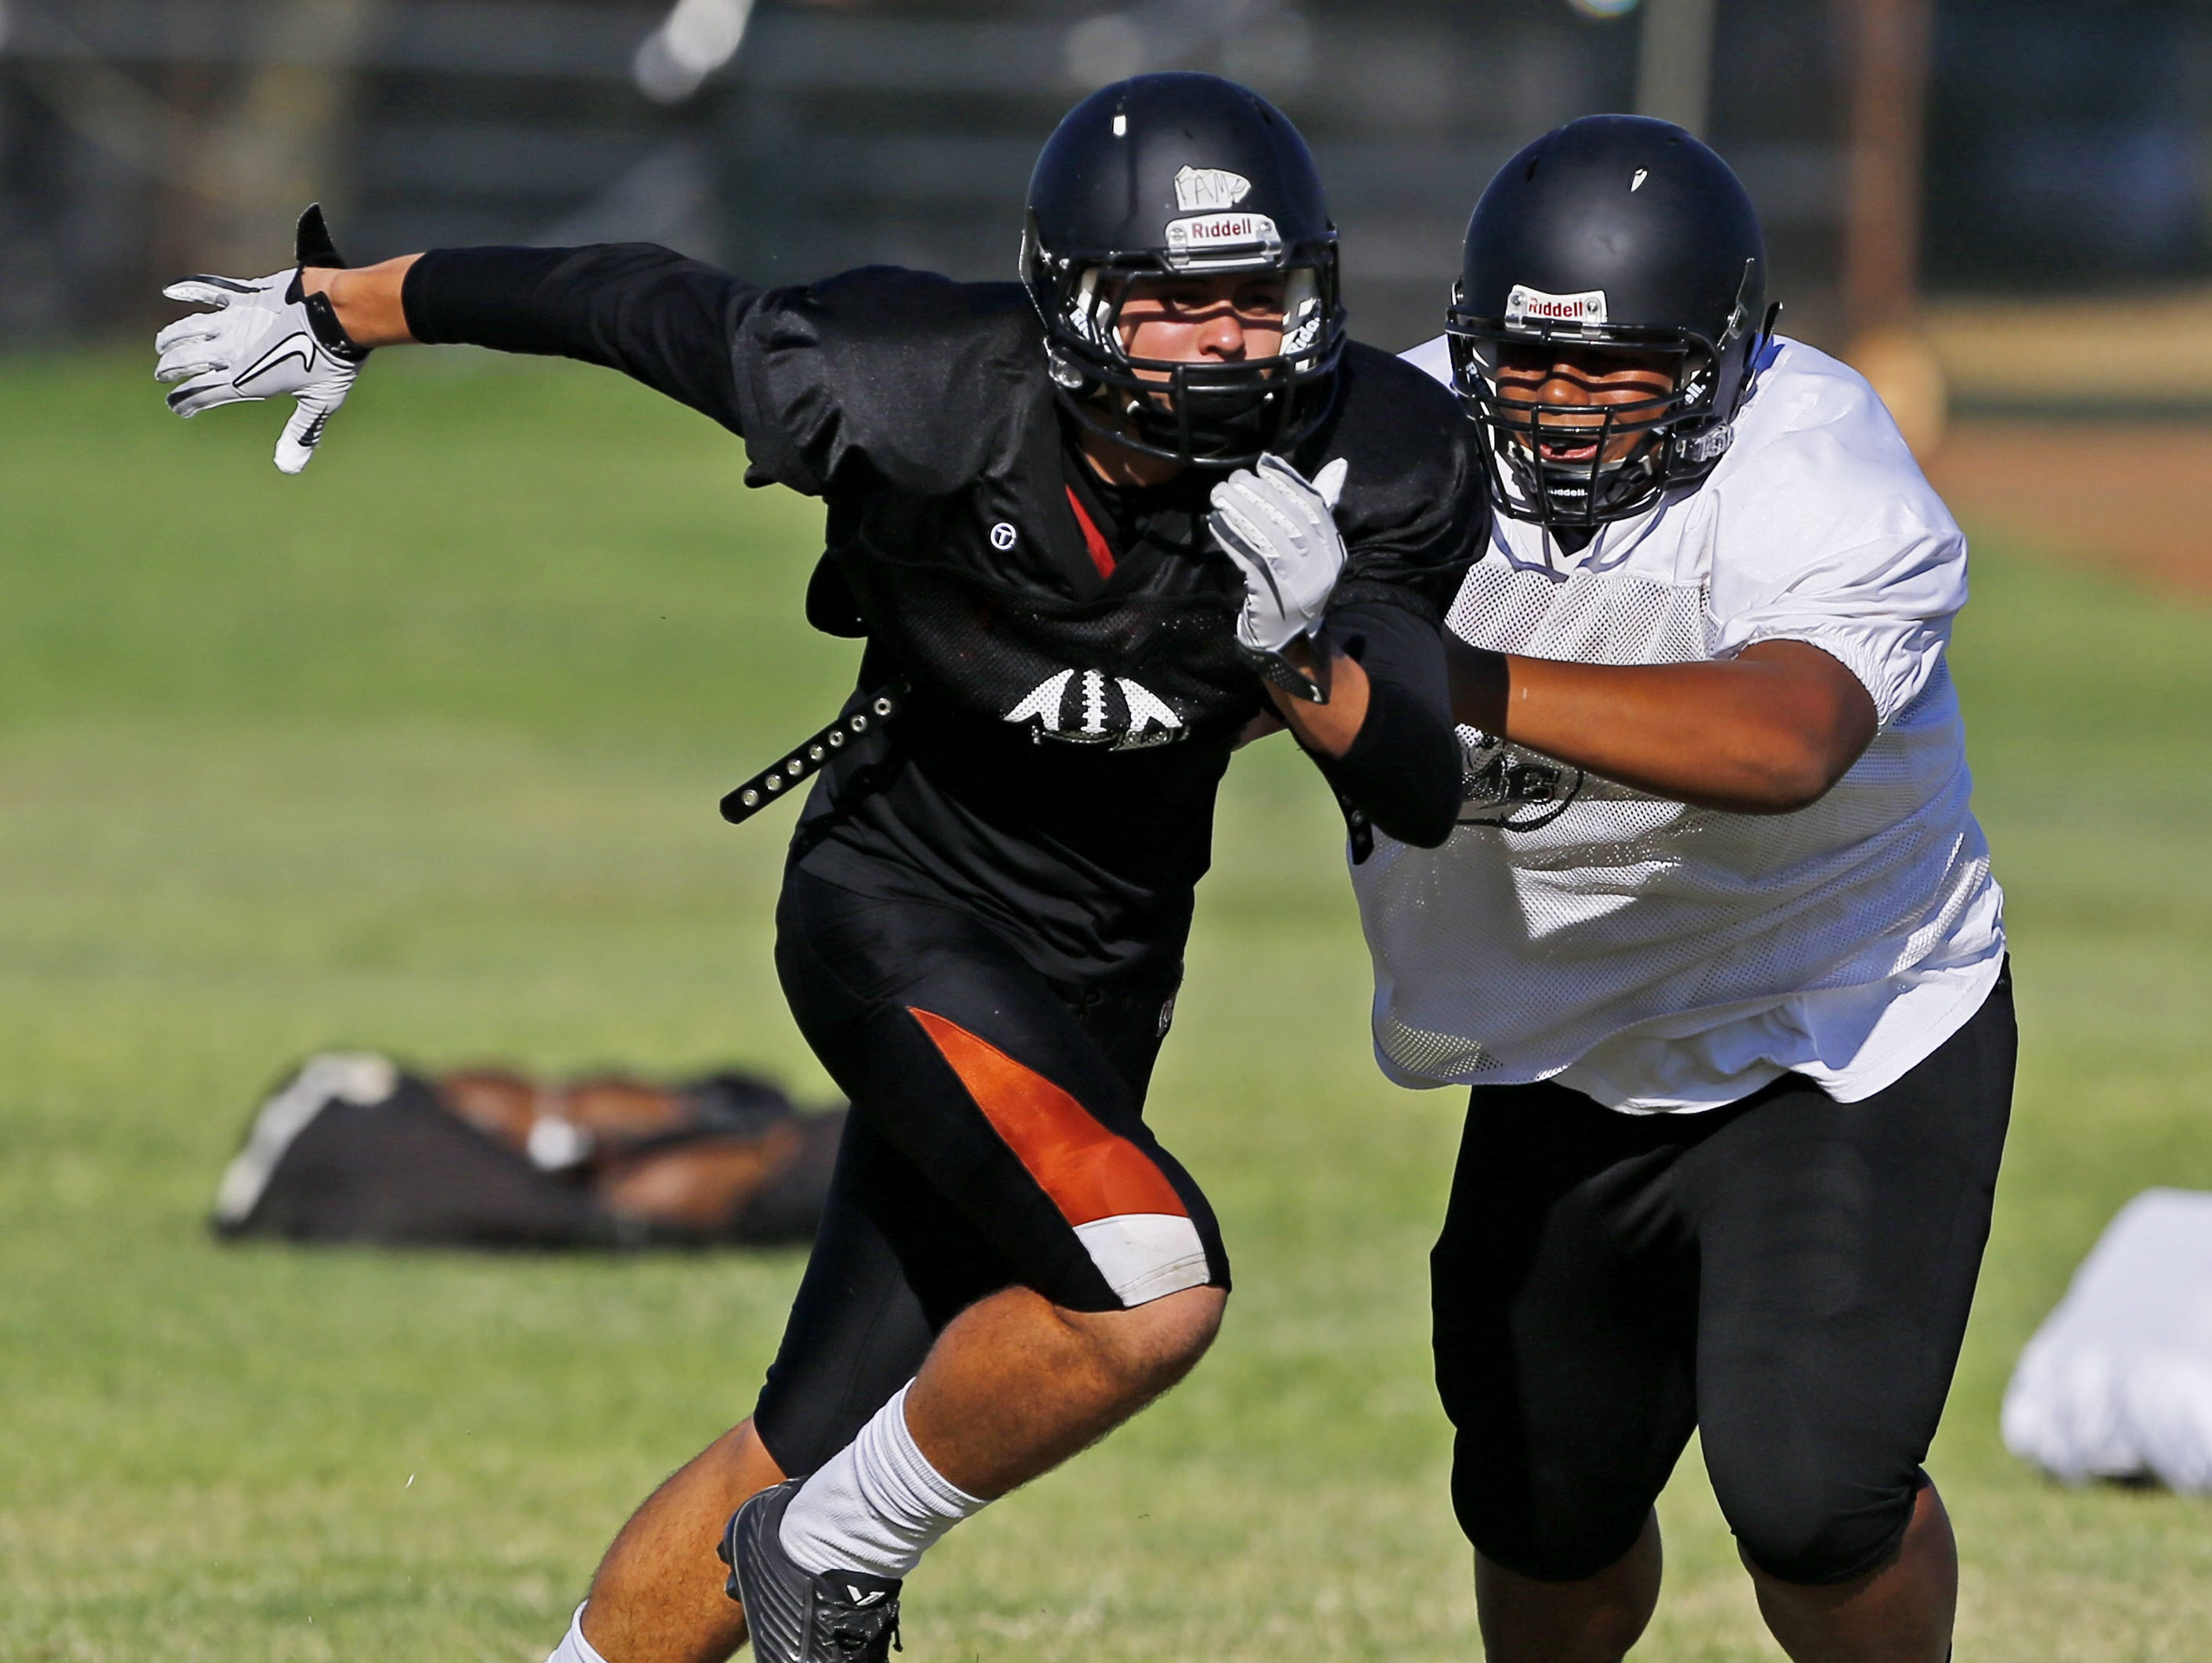 desert edge football Watch desert edge high school varsity football highlights and check out their schedule and roster on hudl.